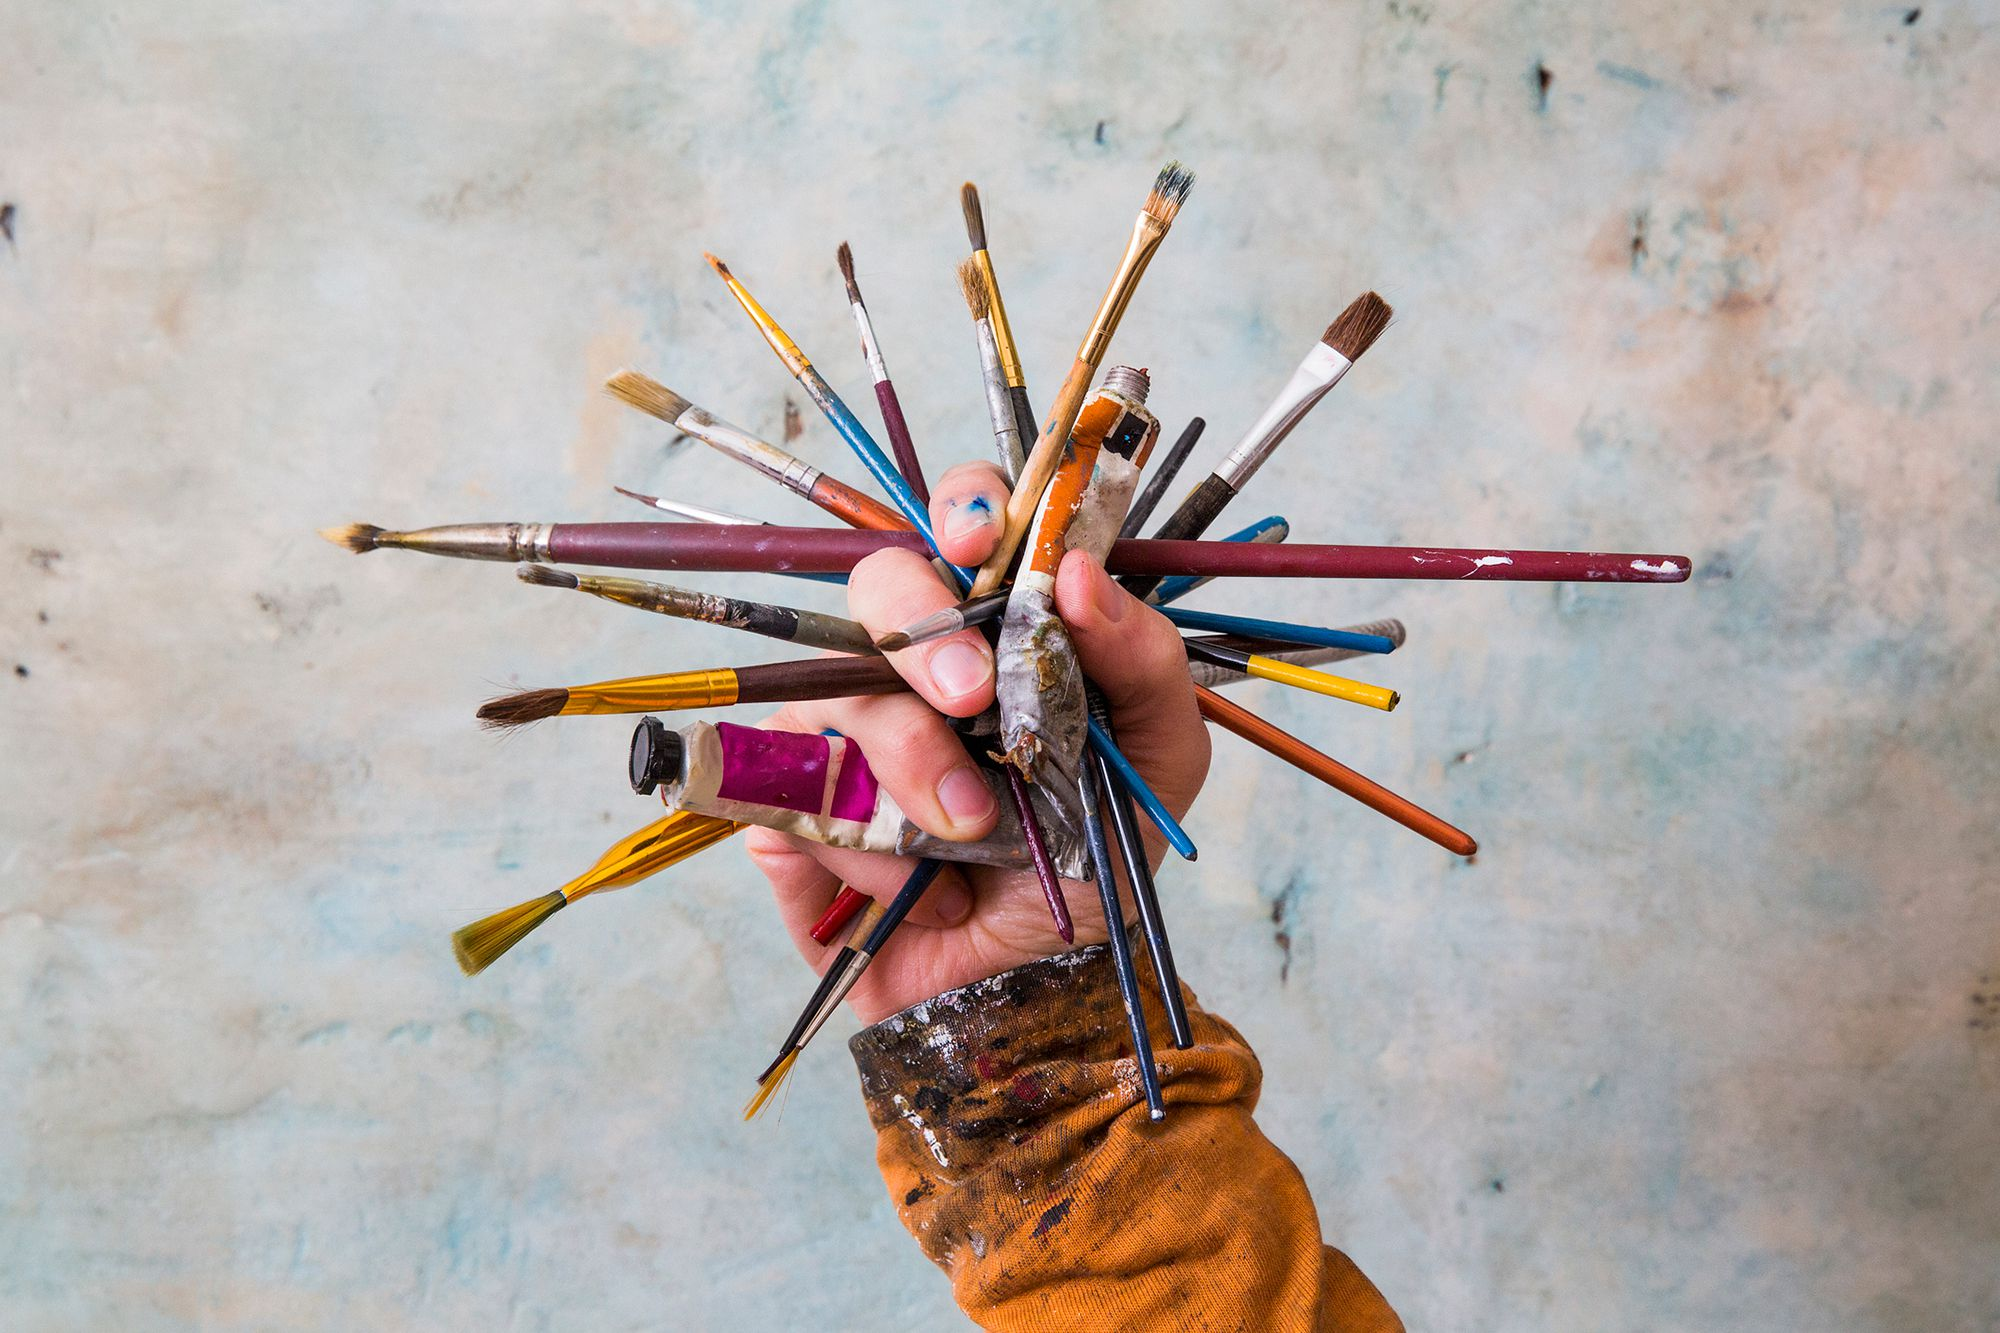 Stock Up On Art Supplies From These North Jersey Shops